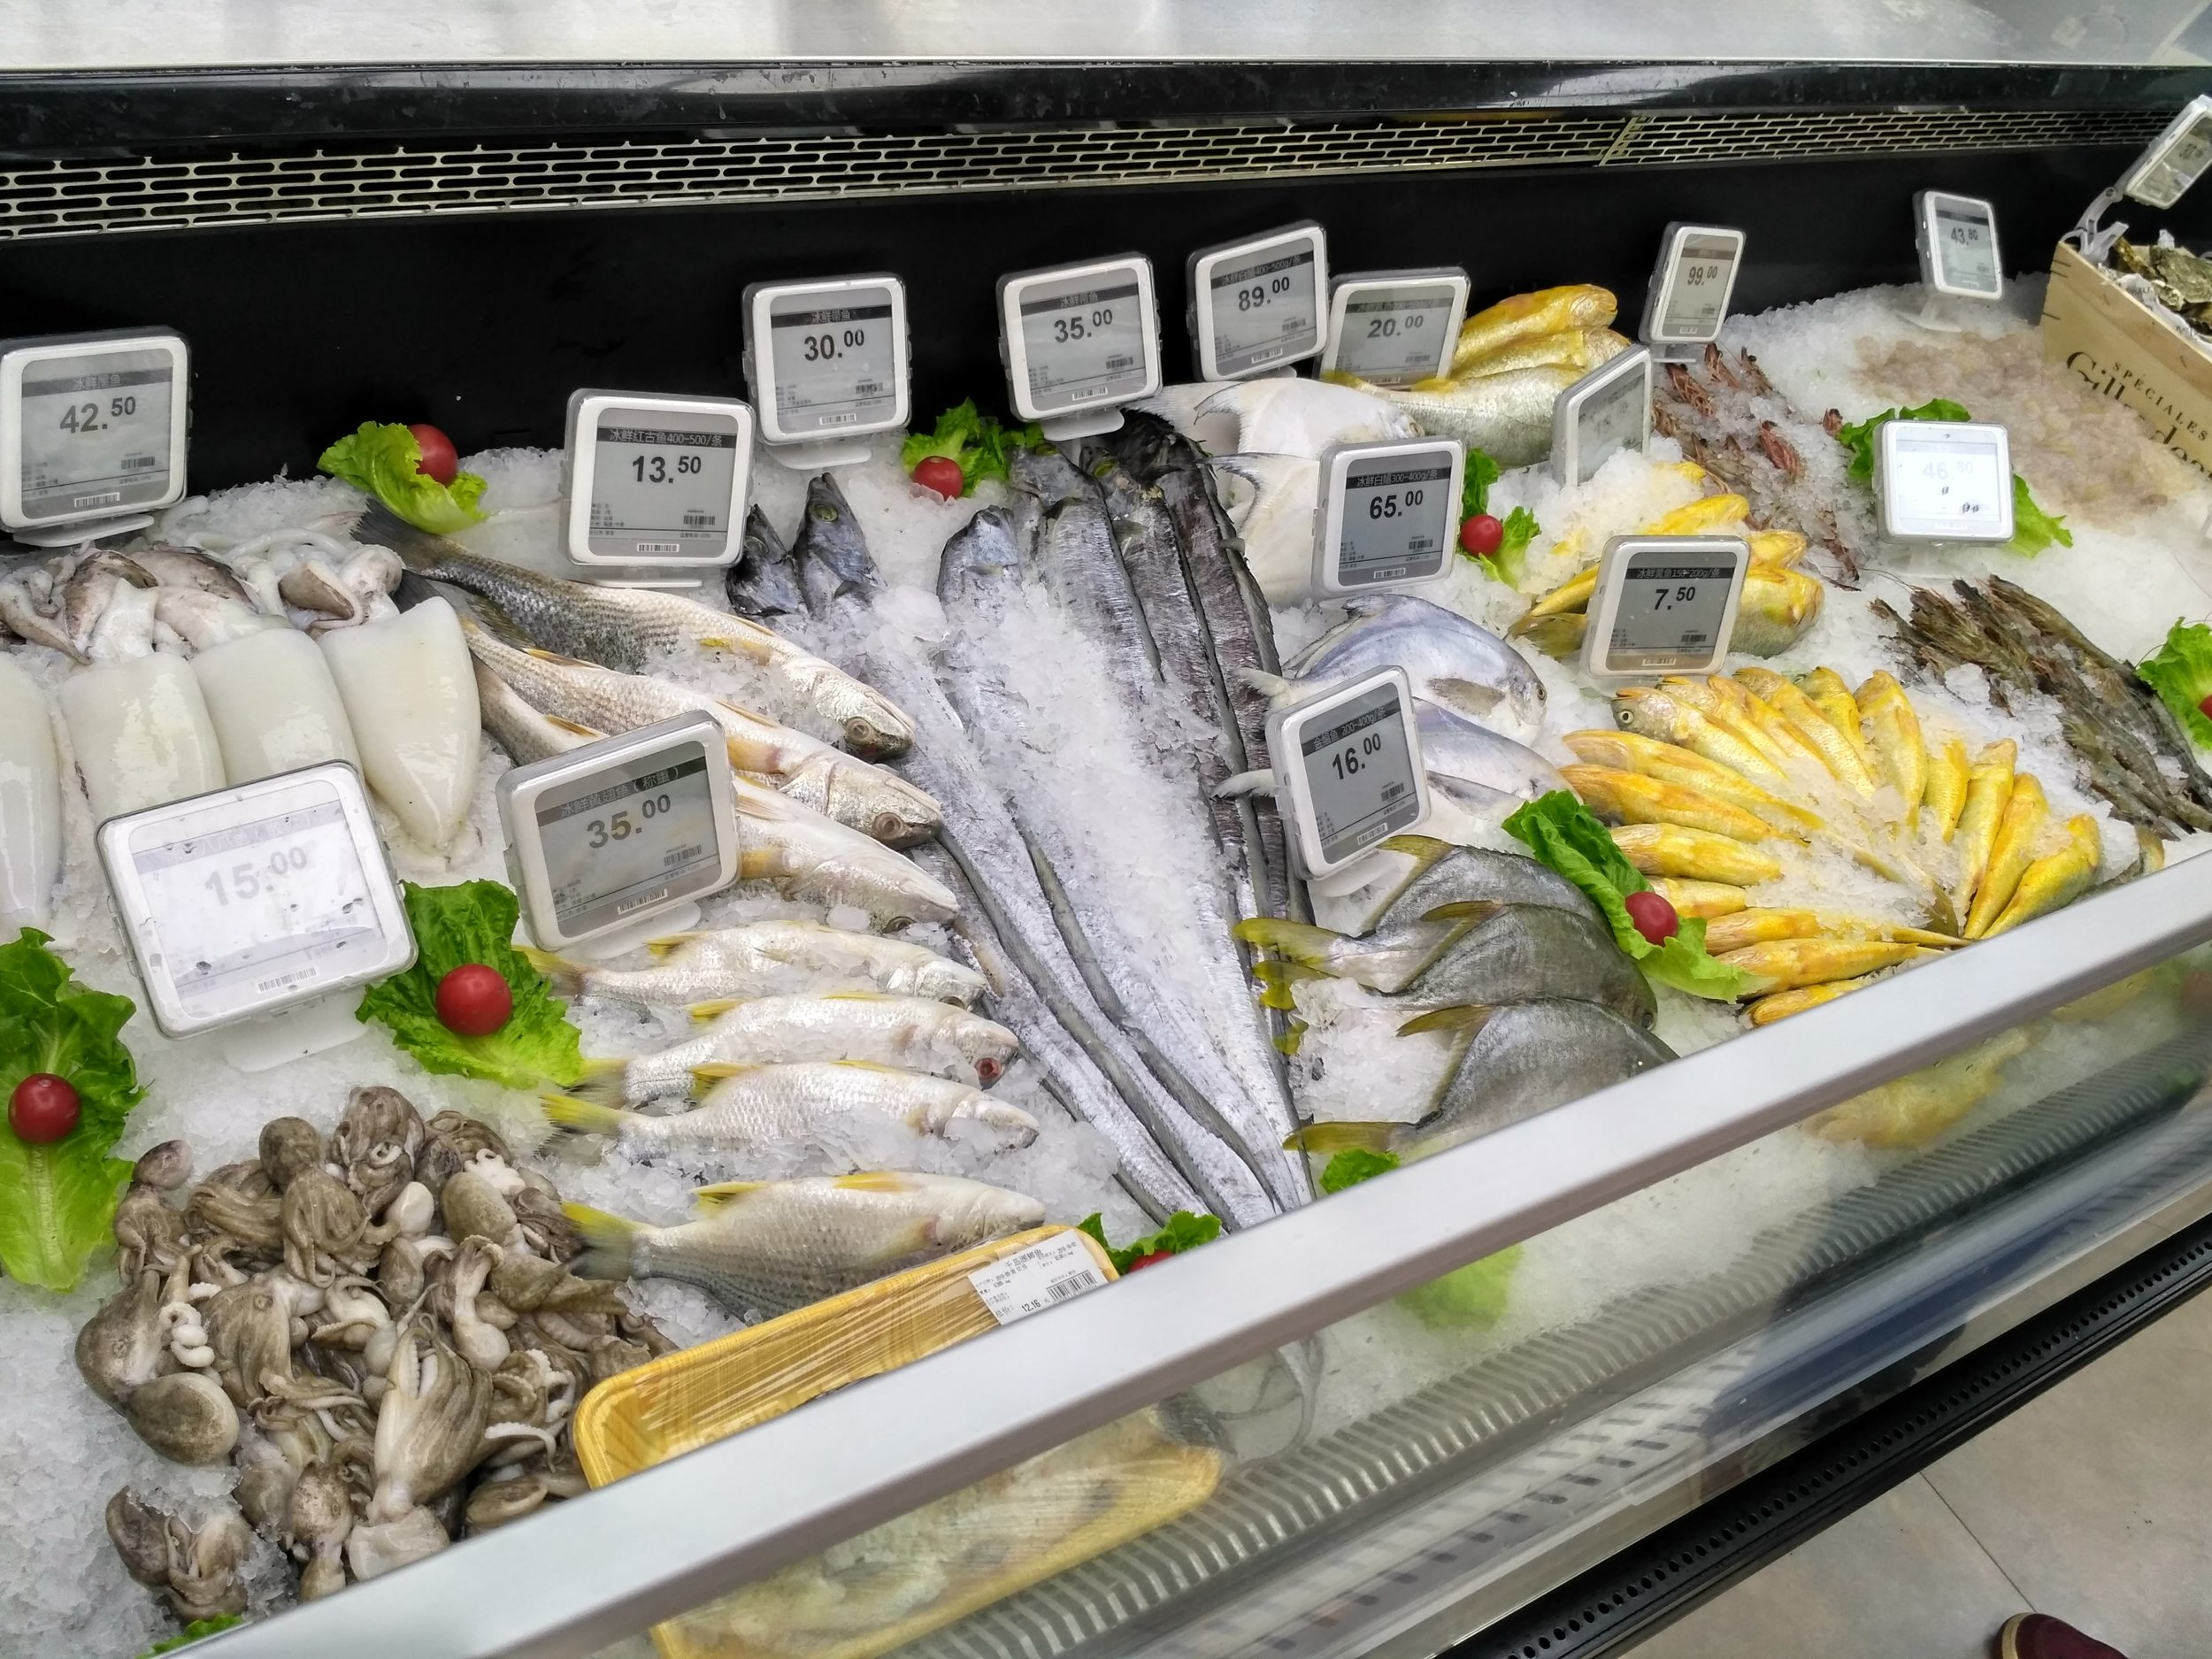 Wet area fresh seafood display with electronic shelf labels in protective casings